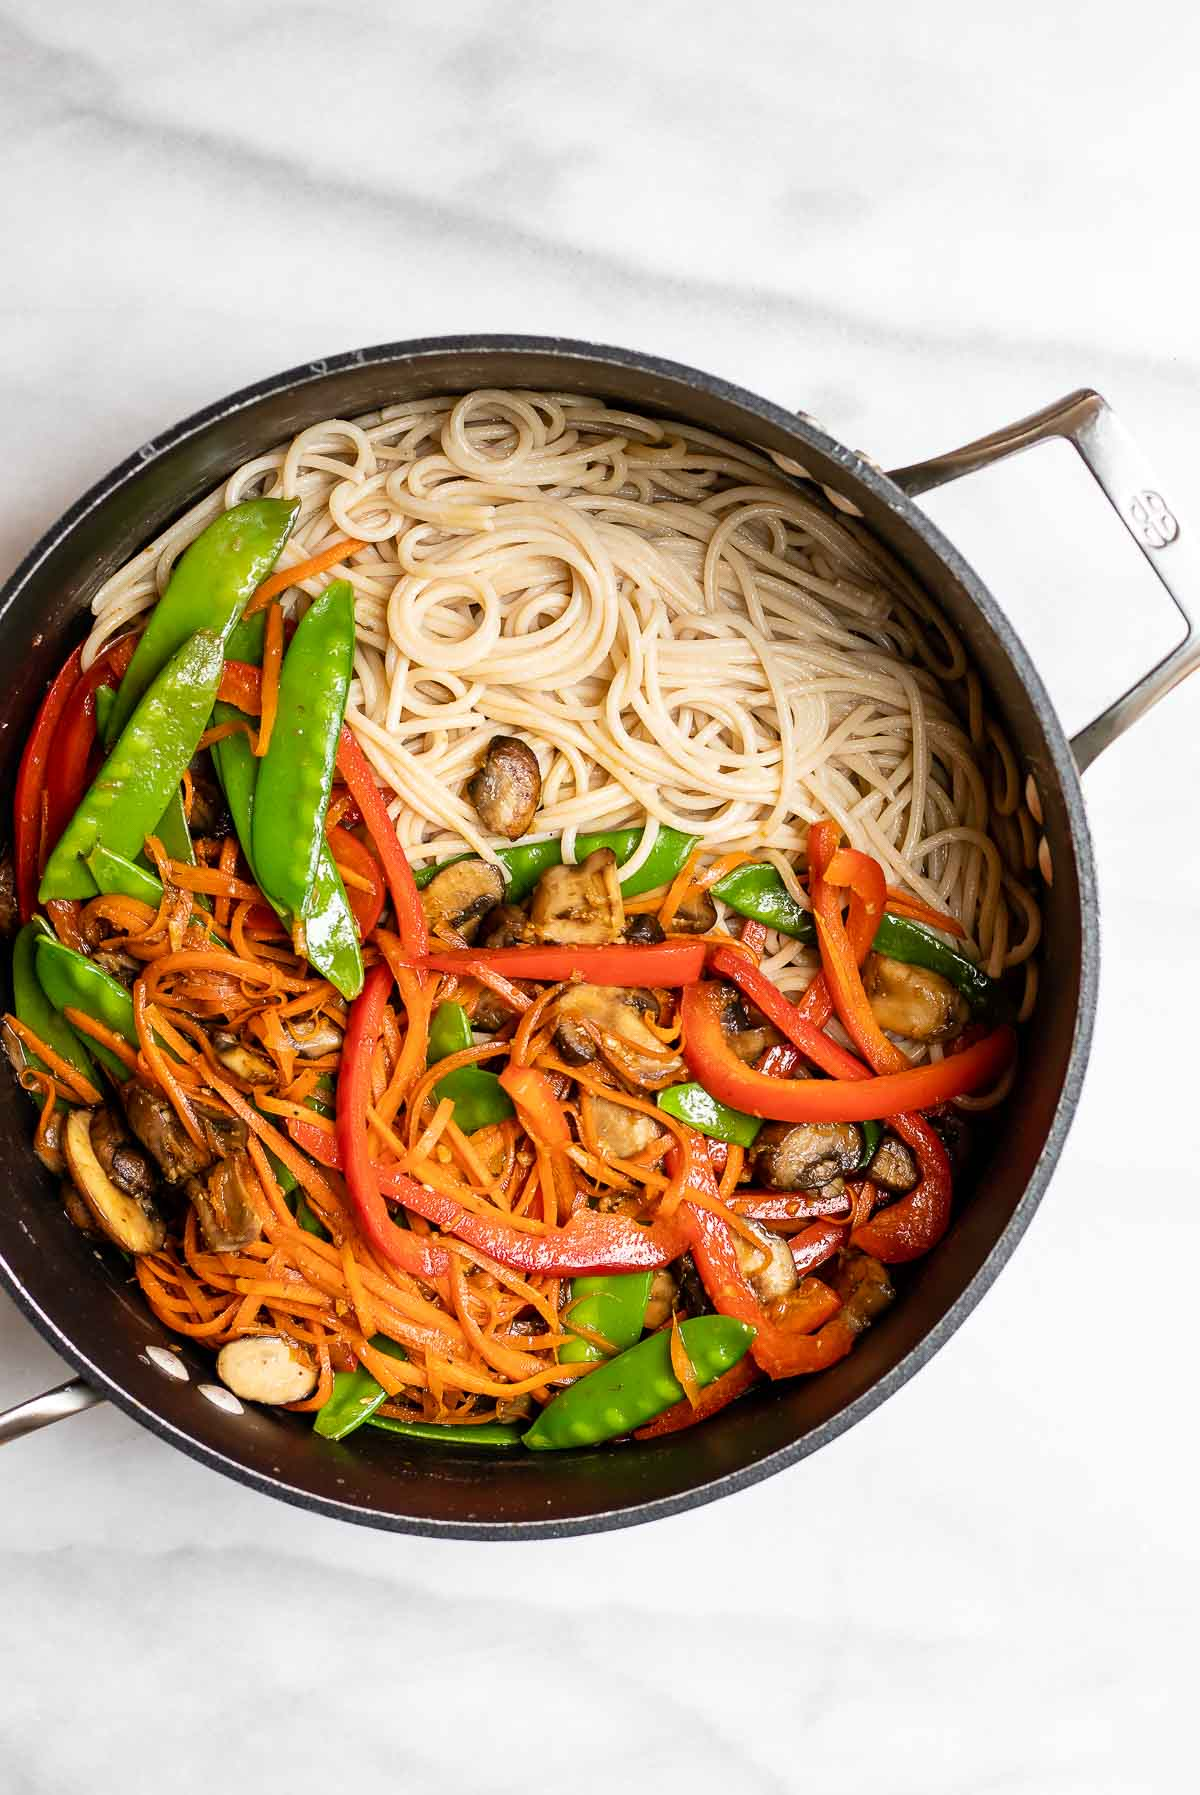 Cooked noodles and vegetables in a pot before getting mixed together.